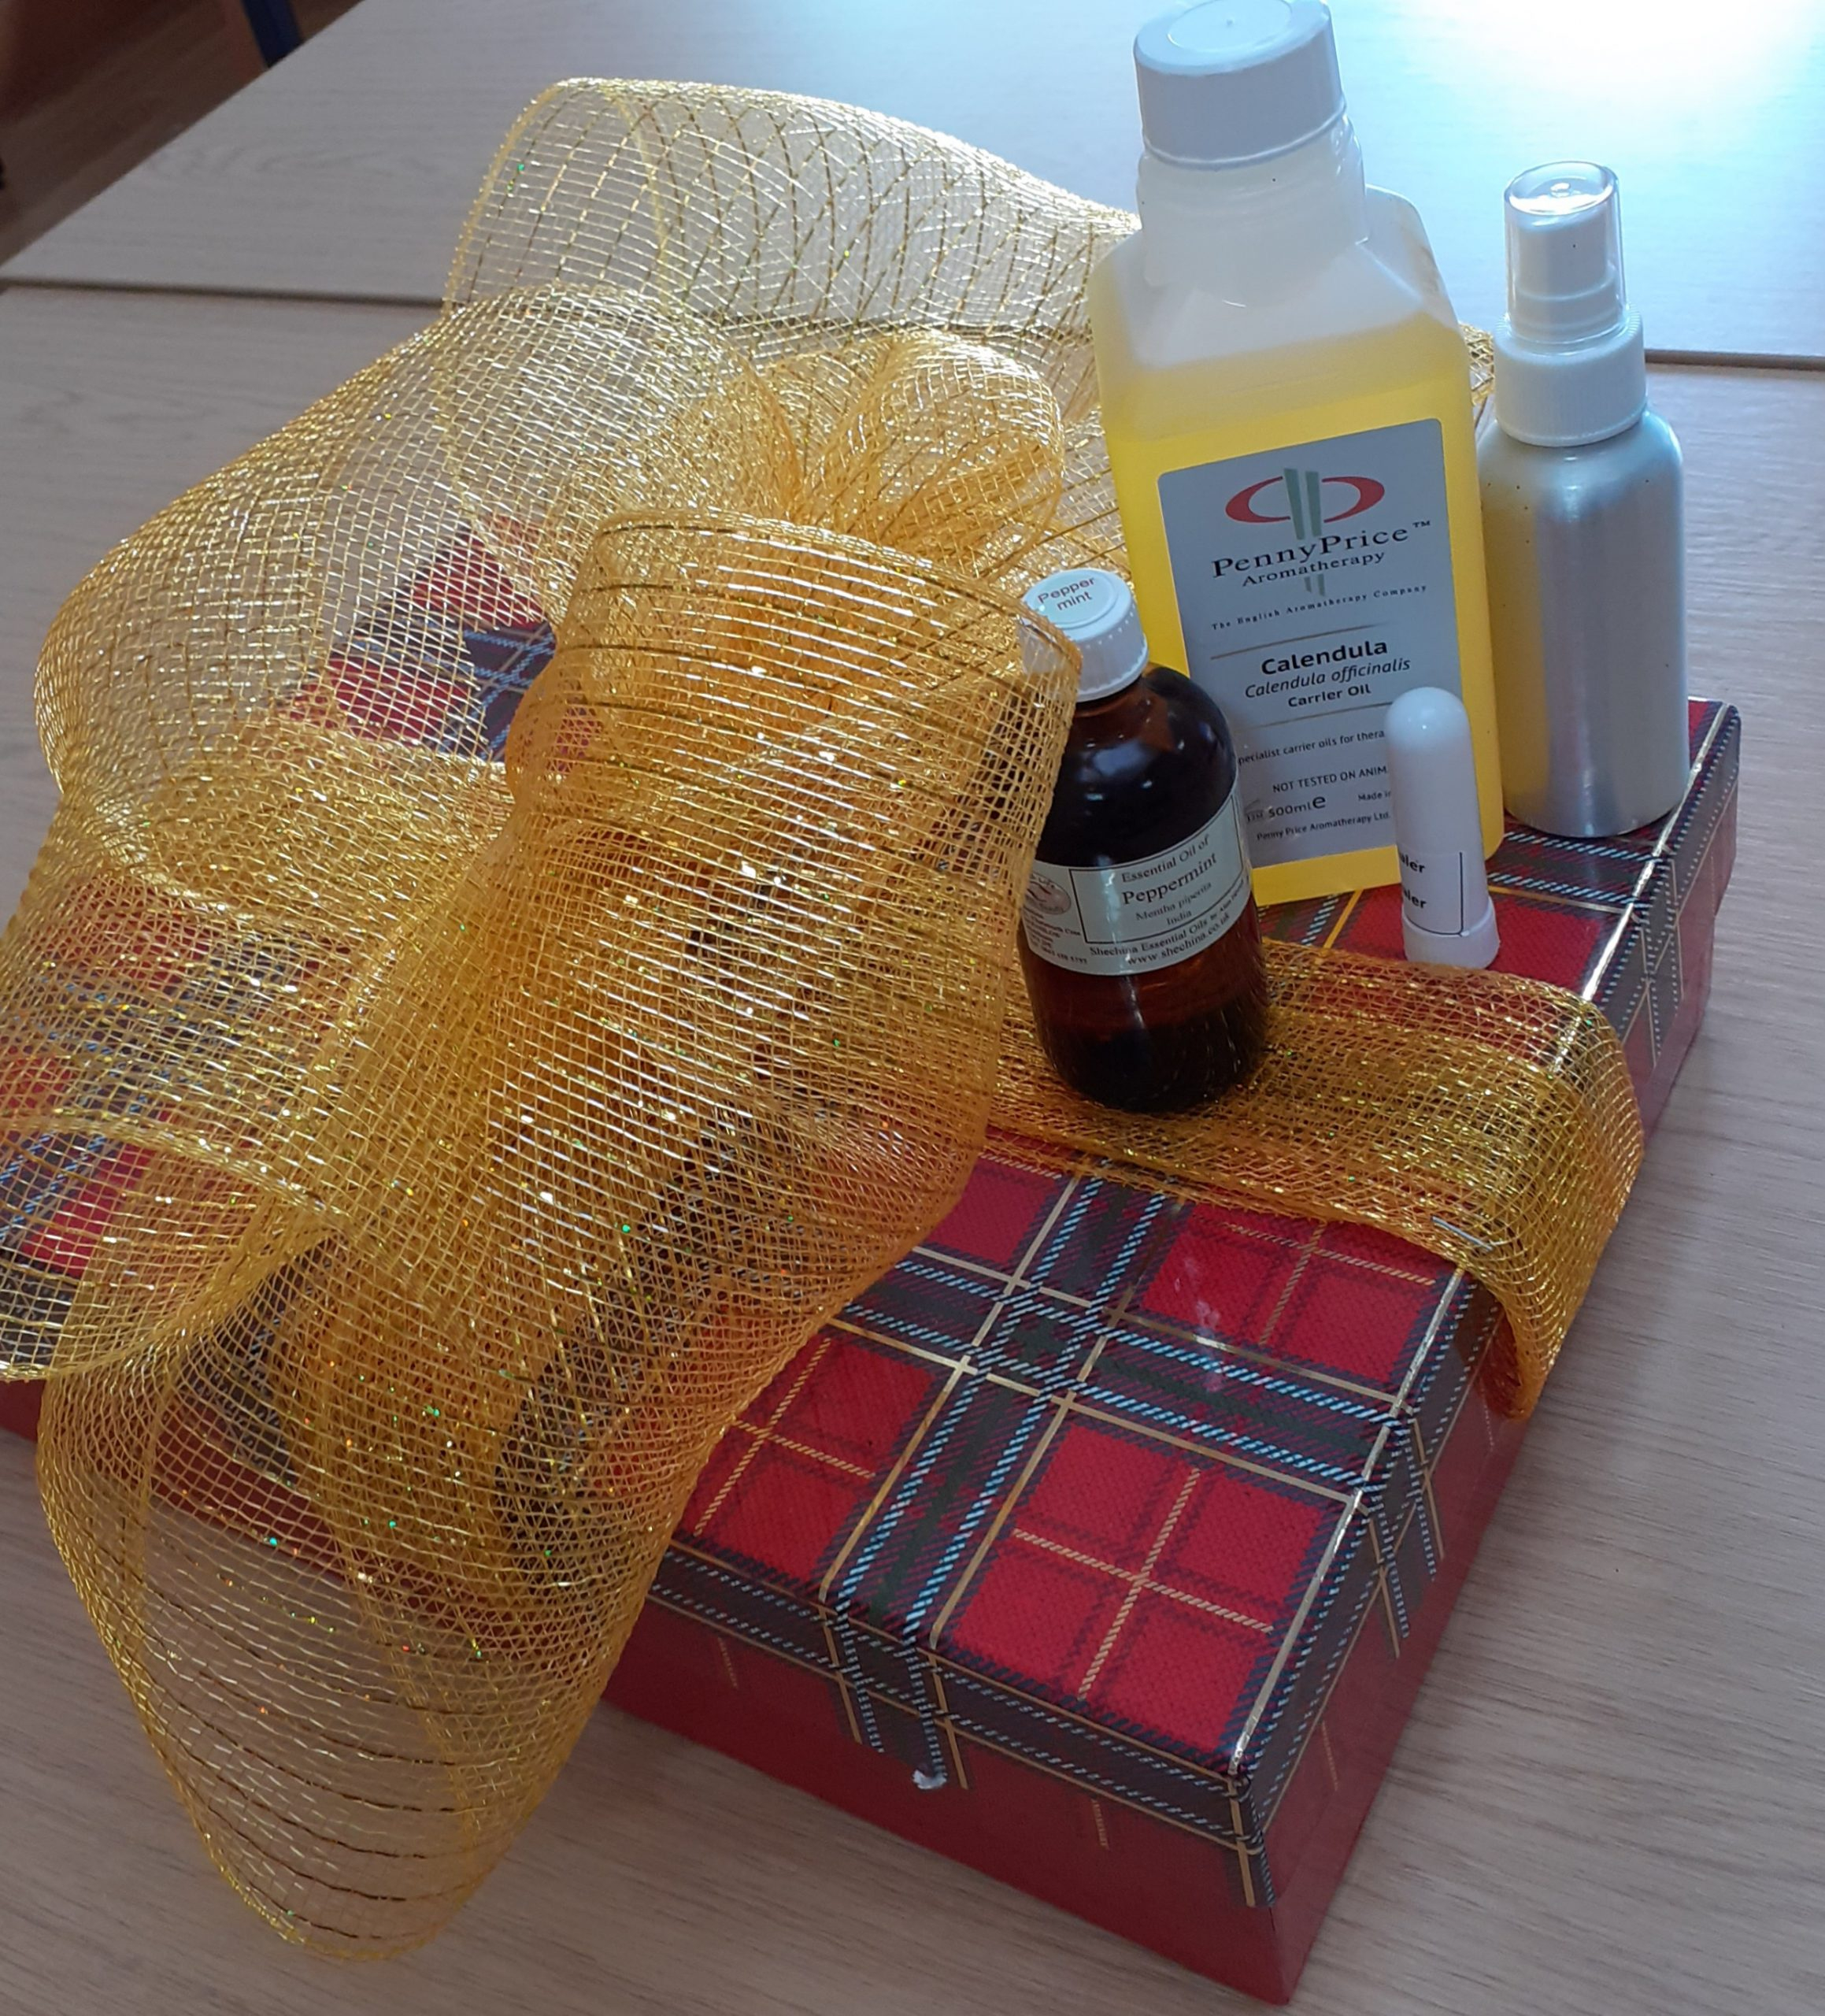 Day 2: Complementary therapies box